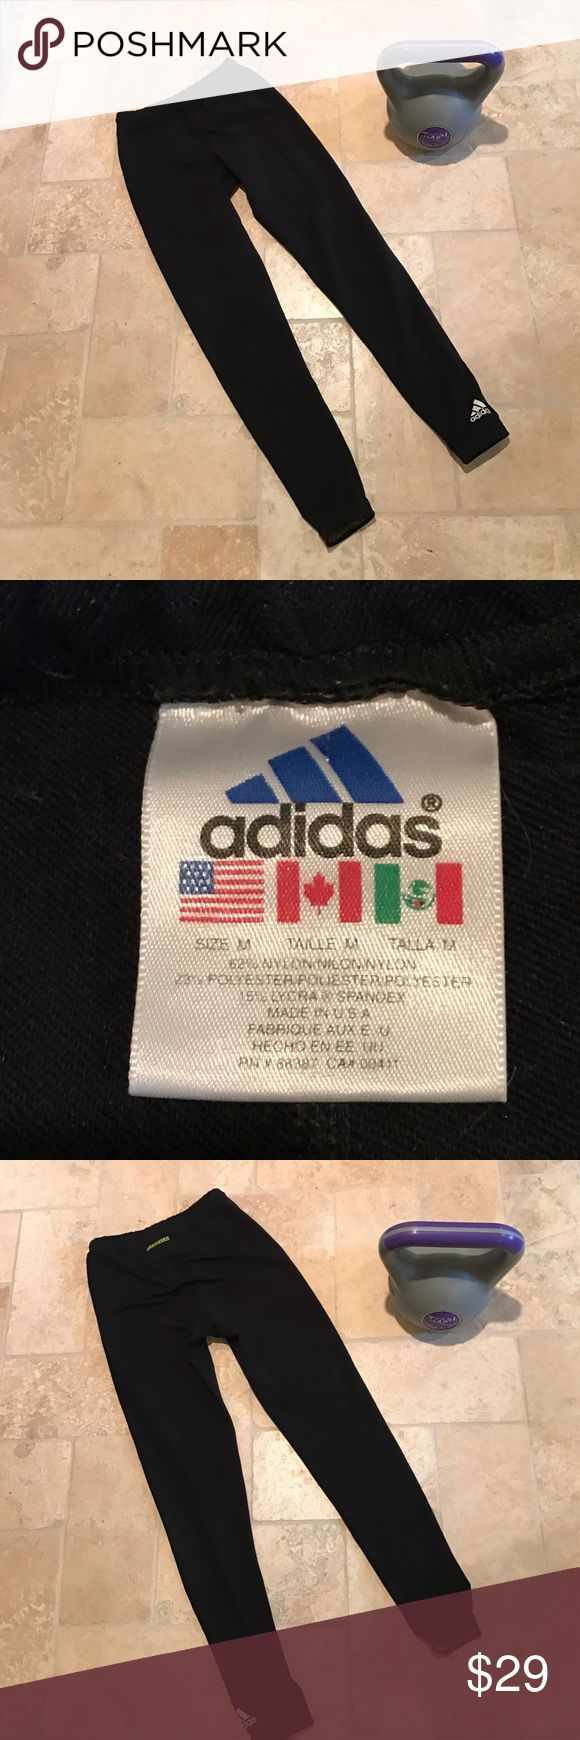 "Adidas leggings Good condition- no rips, tears or stains. Logo on left ankle. ""Equipment"" on tush.Minimal piling. Made in the 🇺🇸 Nylon/Polyester/Spandex blend. Classic. Adidas Pants Leggings"